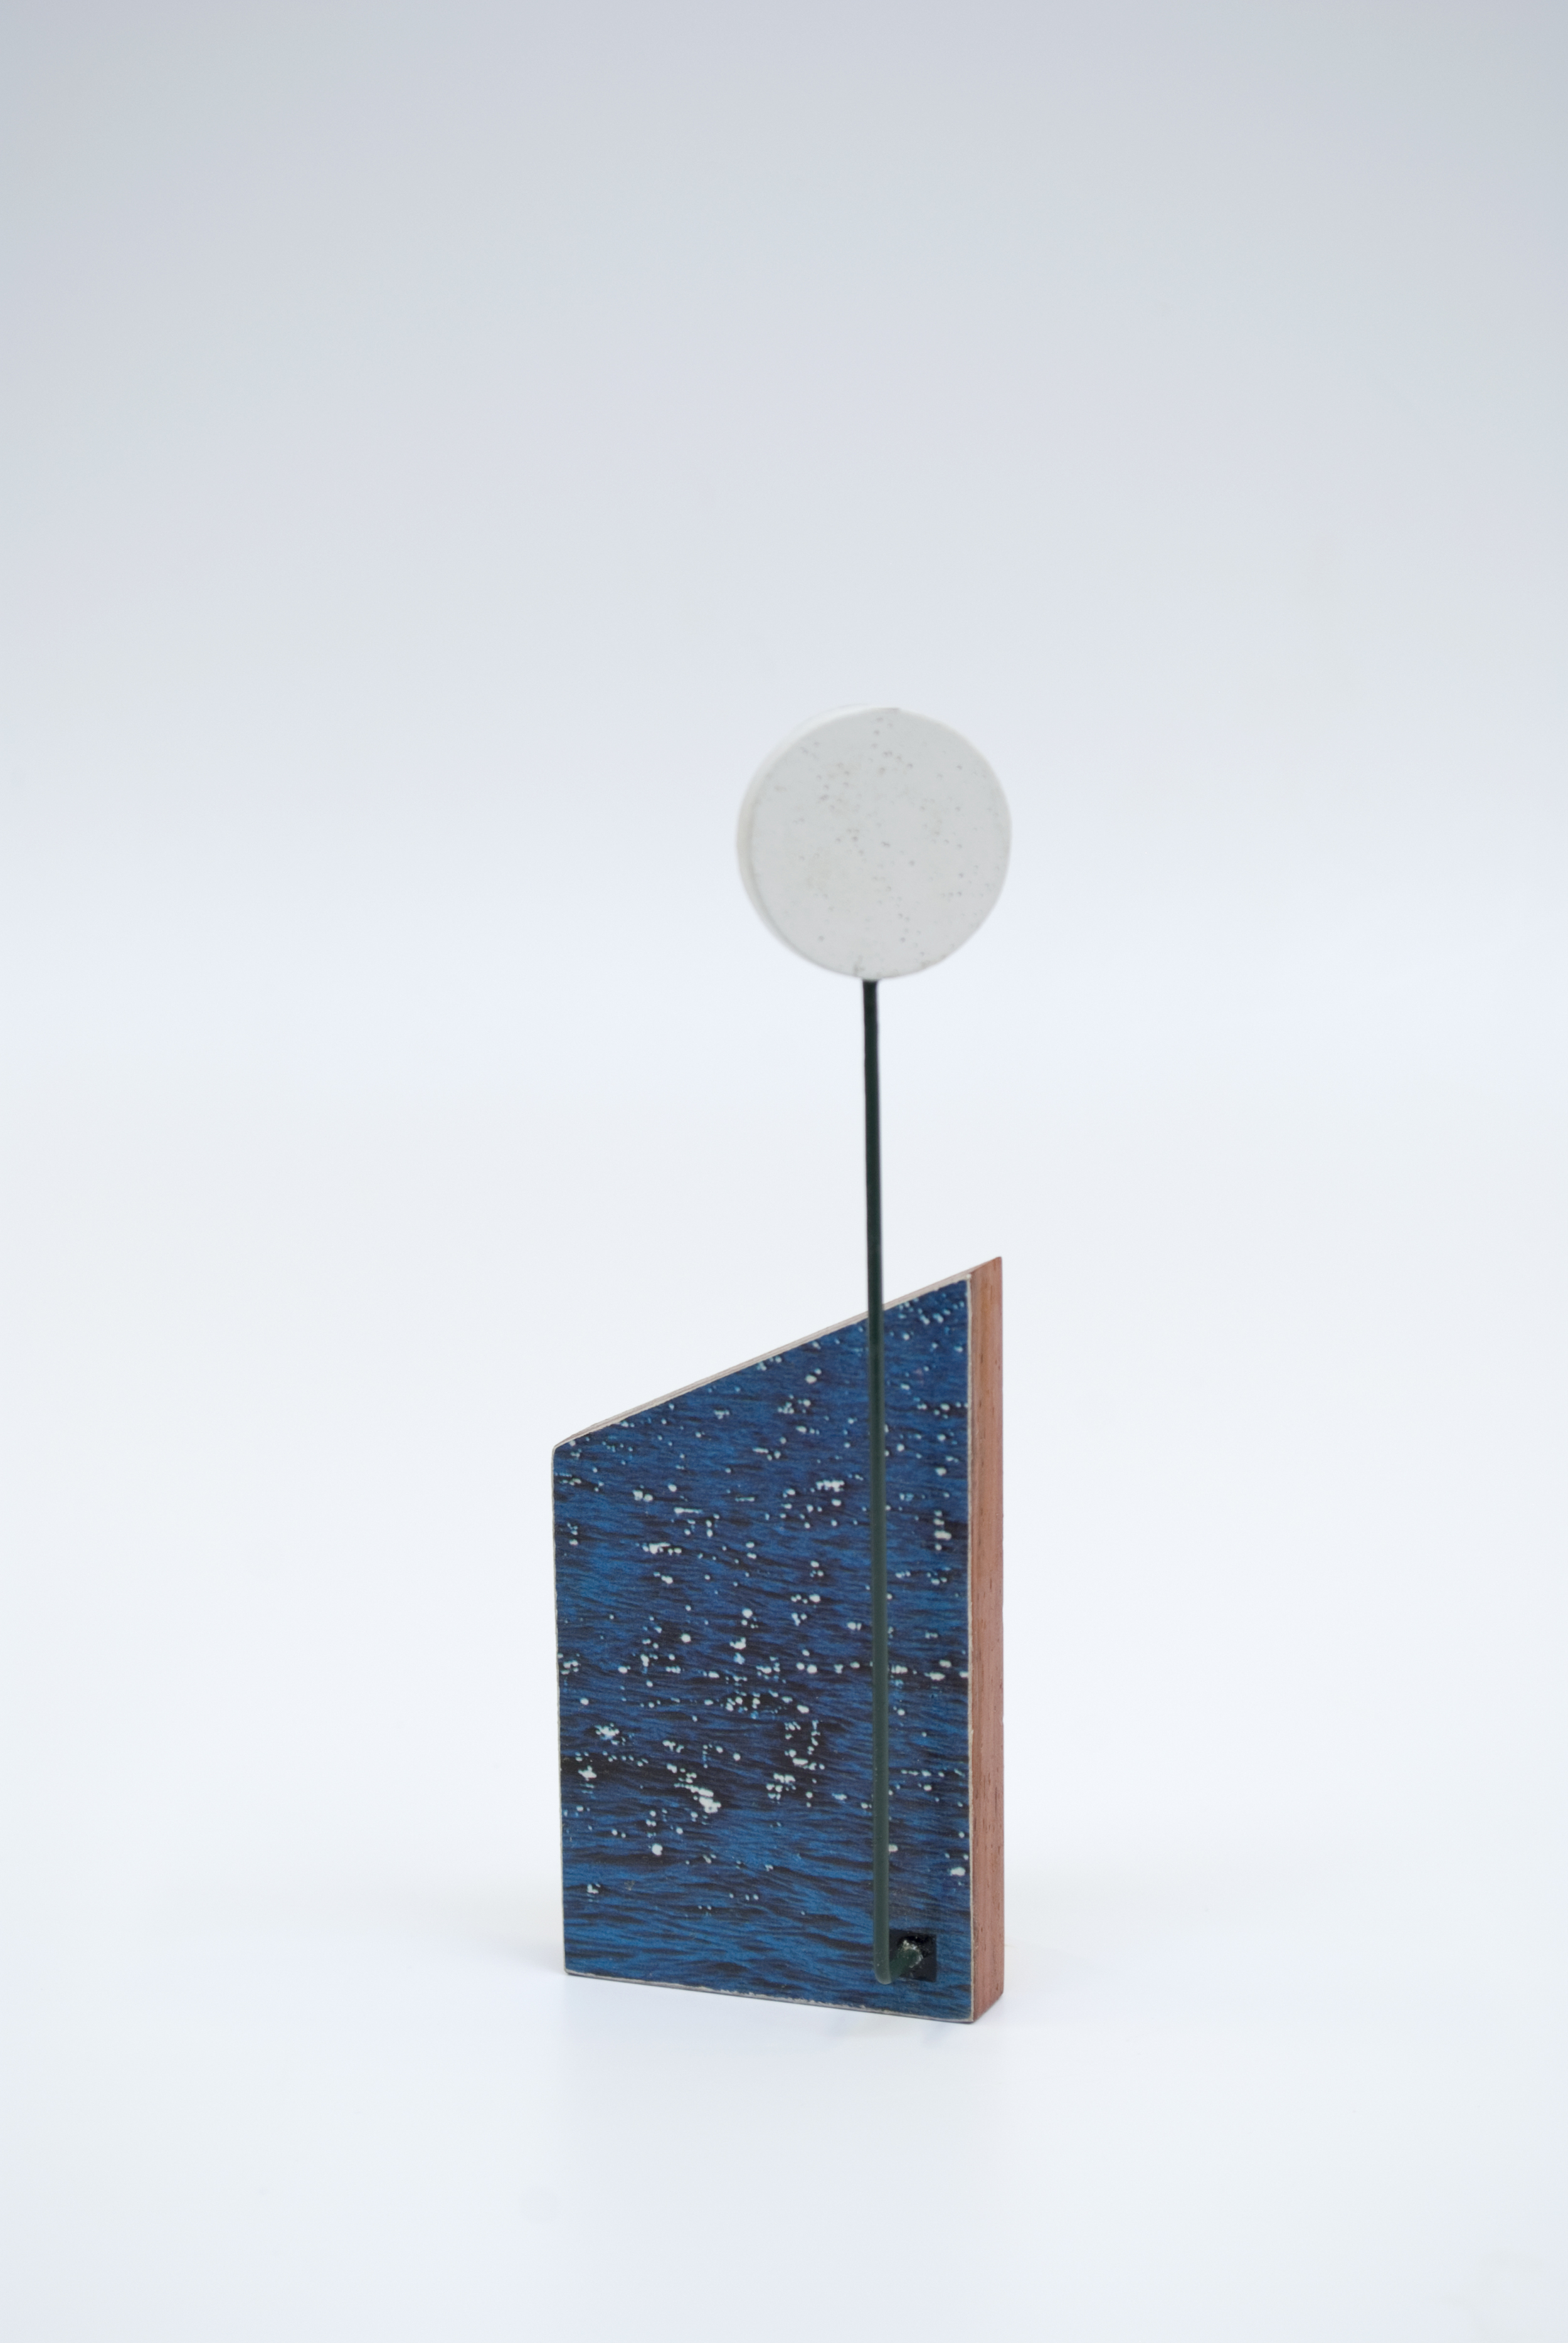 Maquette 12 (back) , 2015  5 x 2 x 1.5 inches  Wood, paint, found image